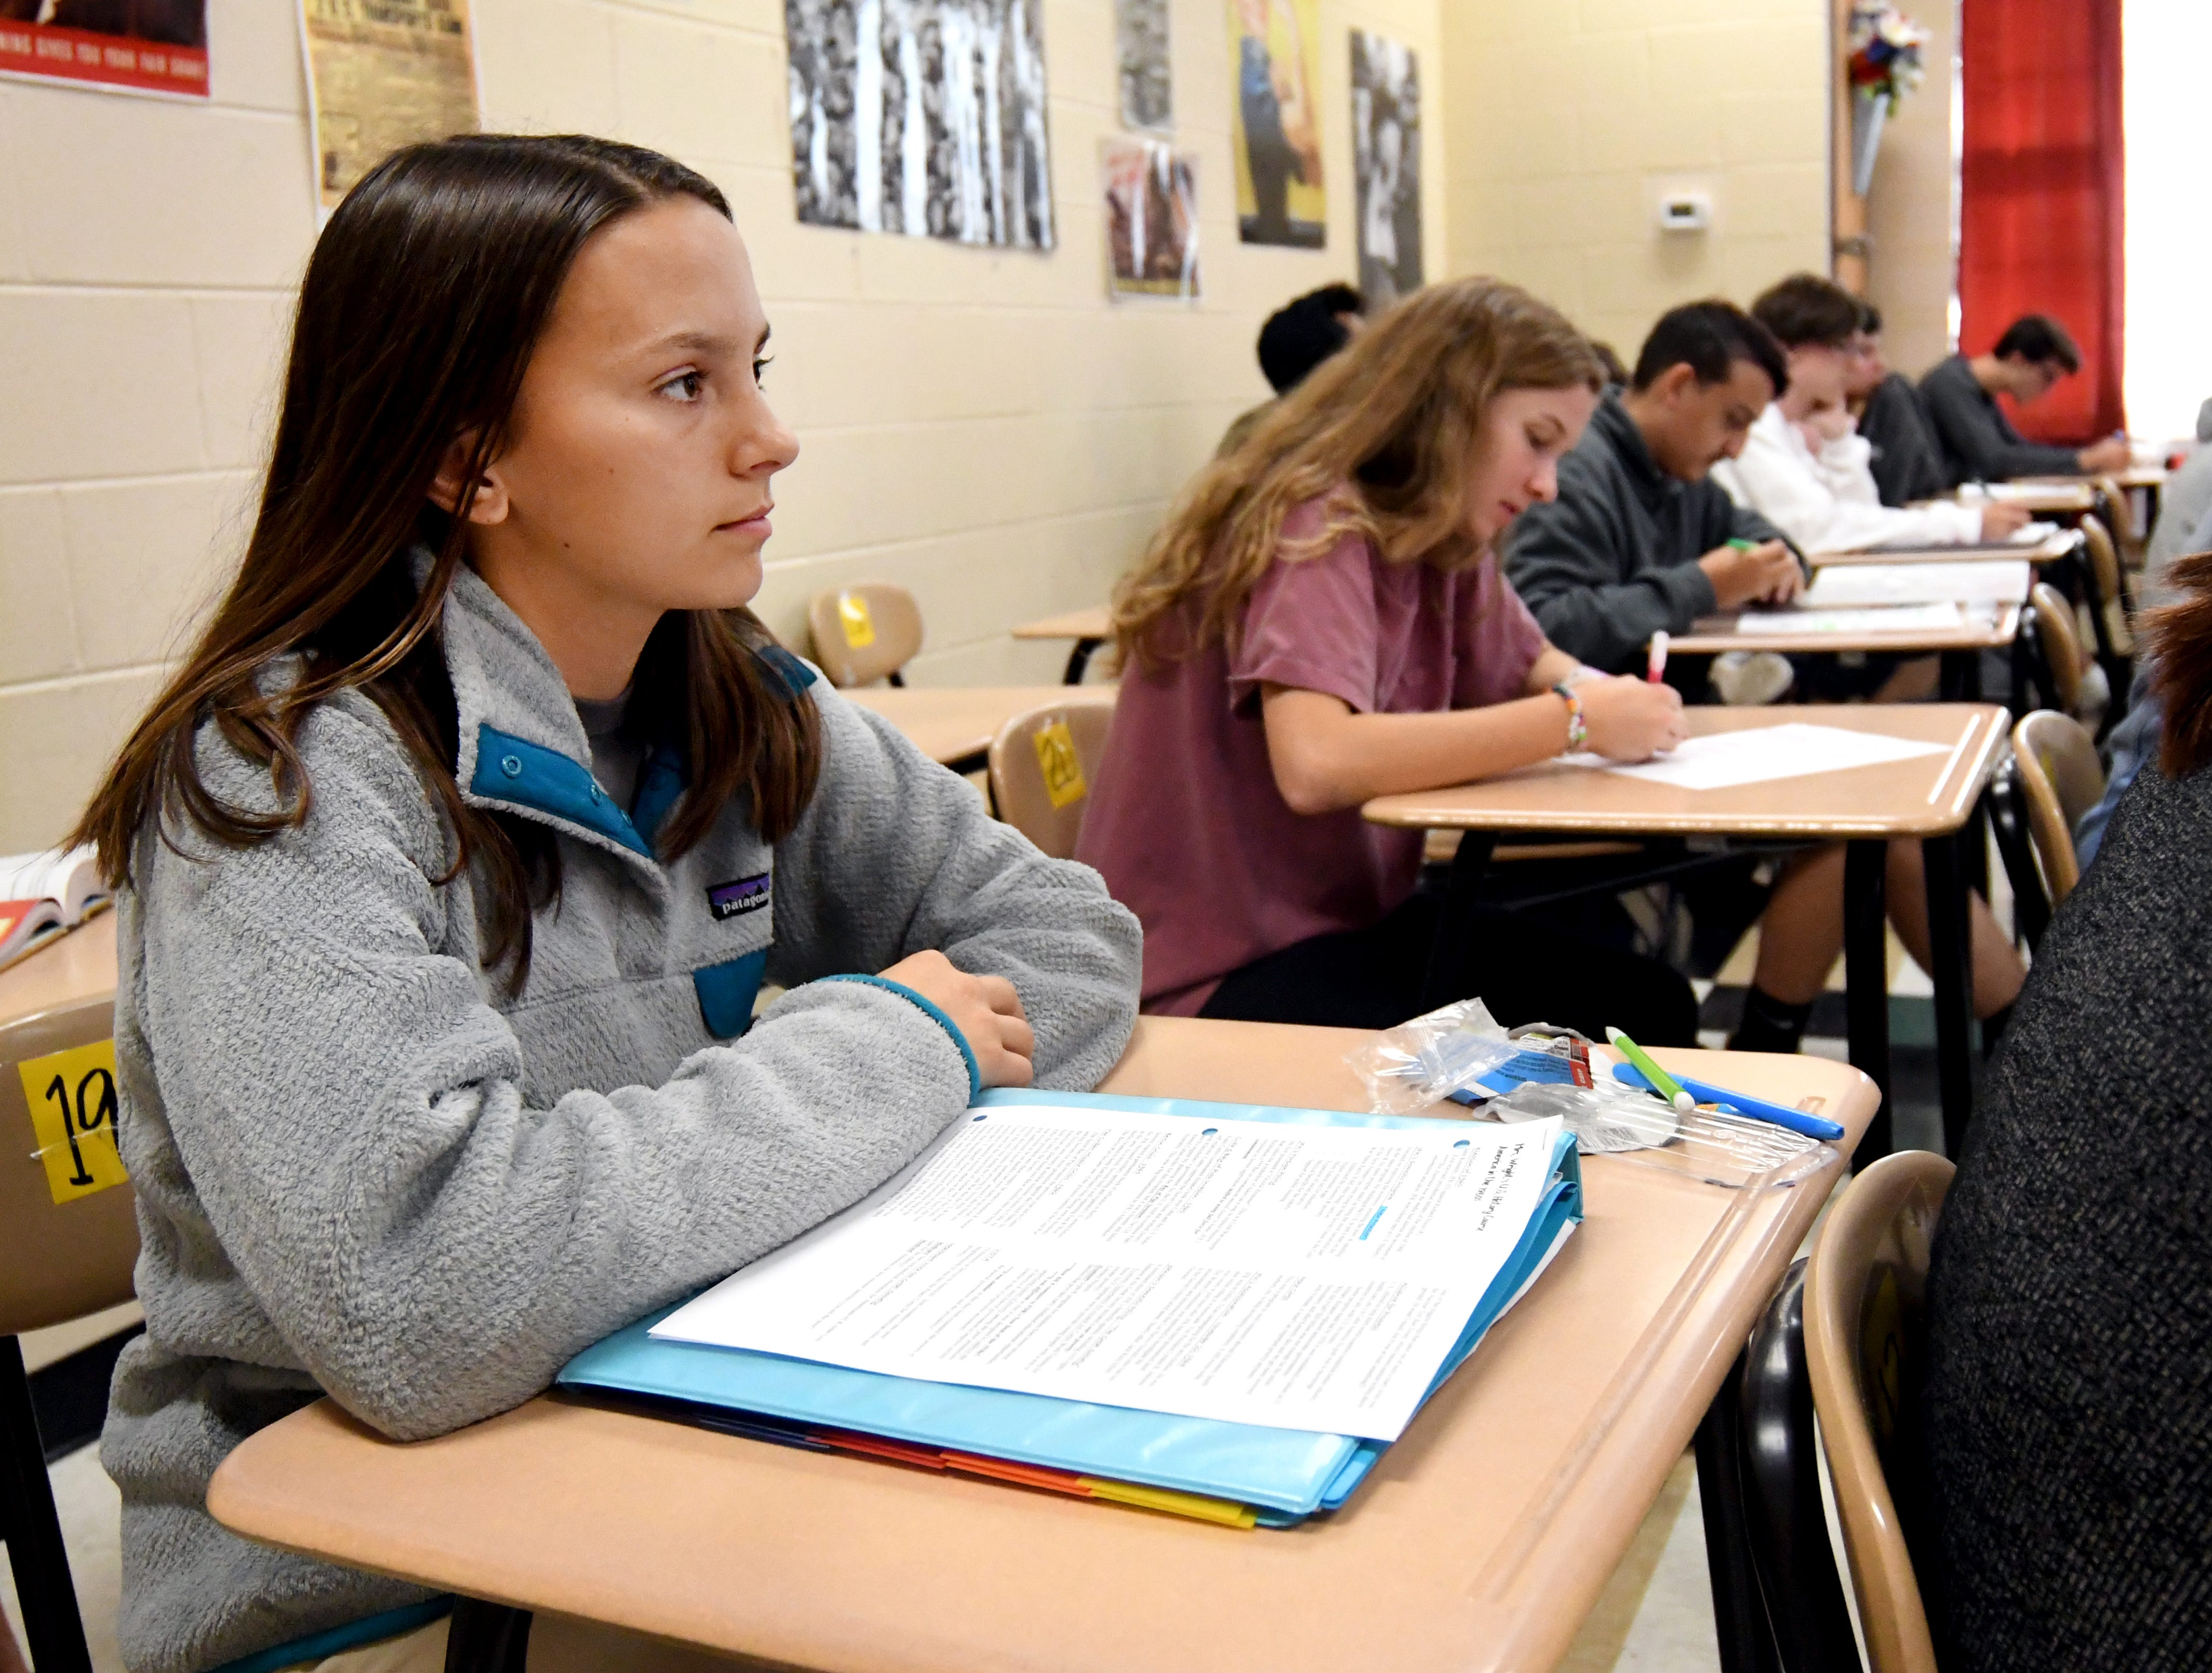 Senior McKenna Jacobs listens during her history class at Oak Grove High School. Oak Grove High School is No. 3 in state in accountability rankings and No. 1 in 6A schools.